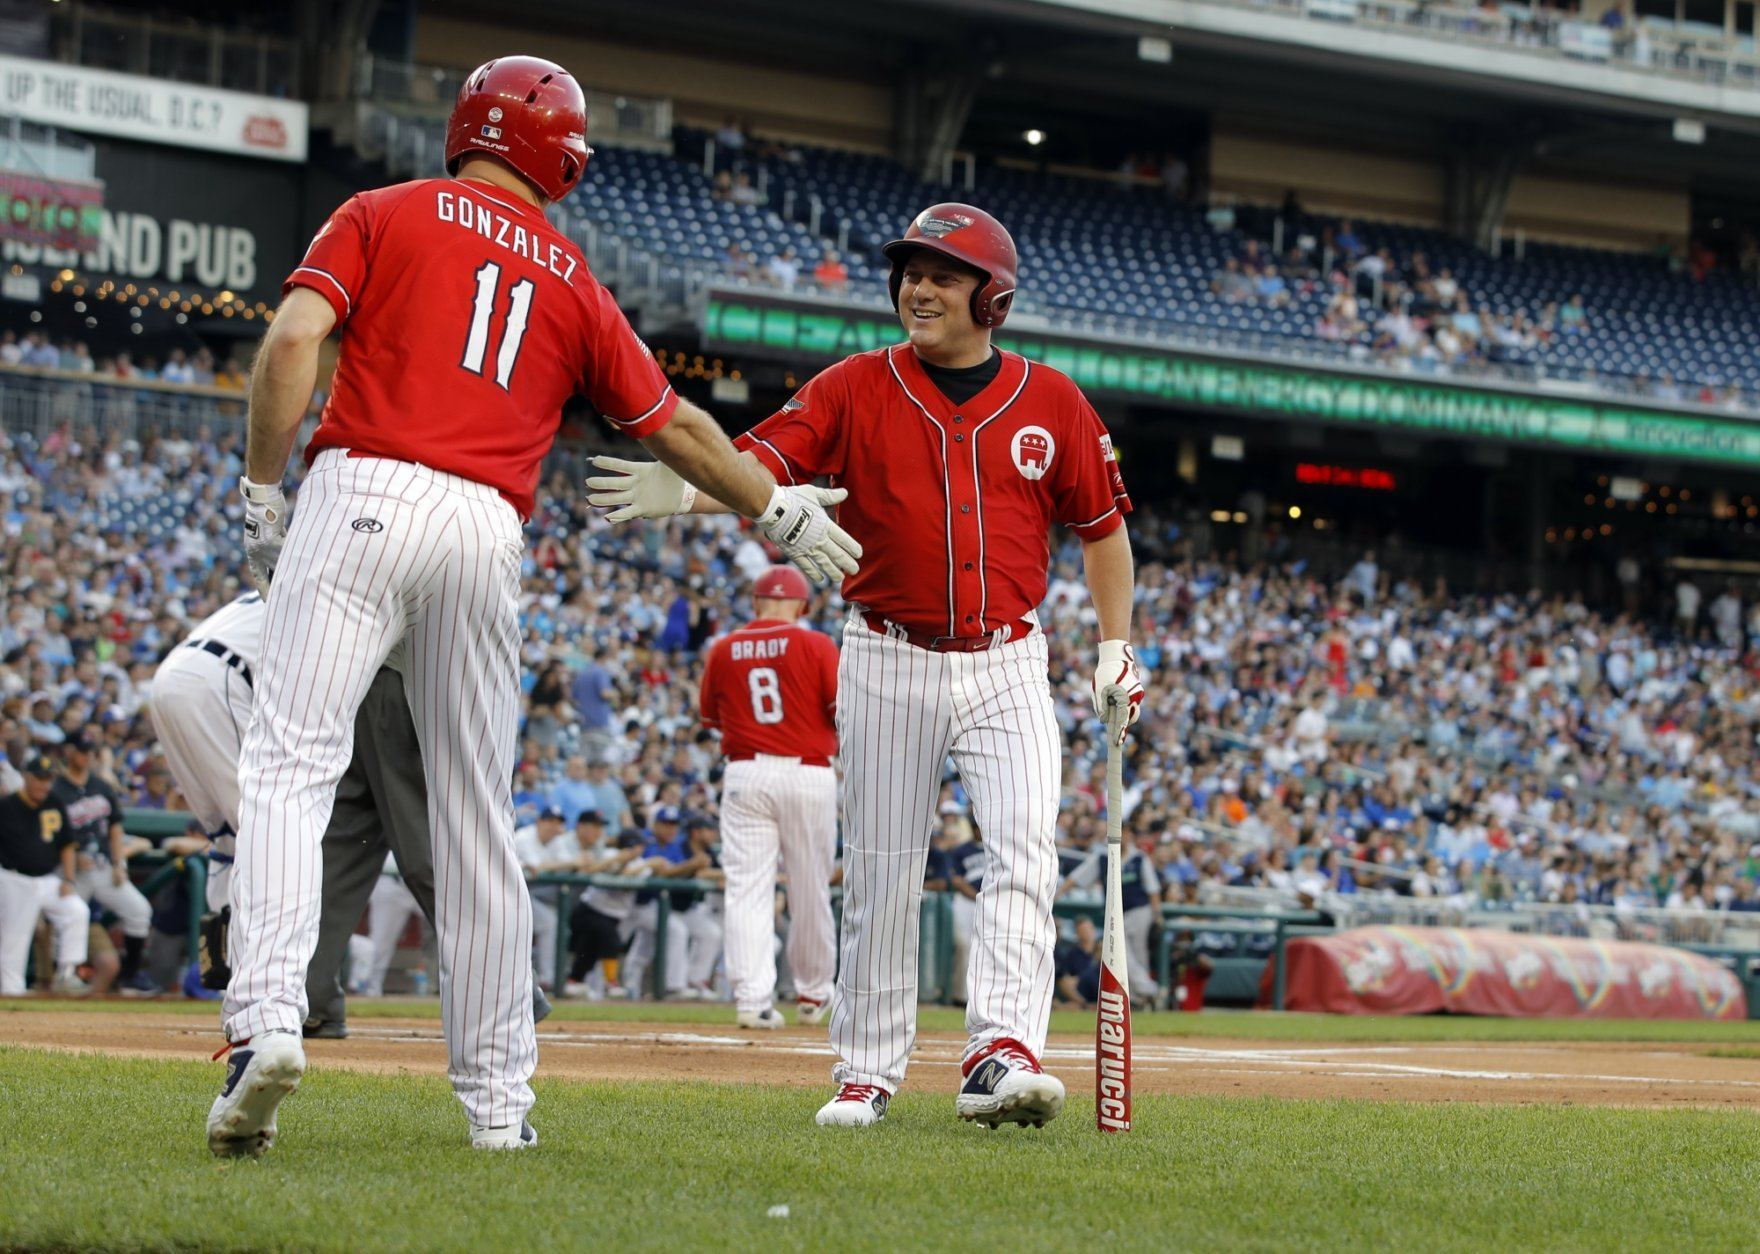 Rep. Anthony Gonzalez, R-Ohio, congratulates Rep. Steve Scalise, R-La., after he got a hit during Congressional Baseball Game at Nationals Park in Washington, Wednesday, June 26, 2019. A pinch-runner ran for Scalise. (AP Photo/Carolyn Kaster)